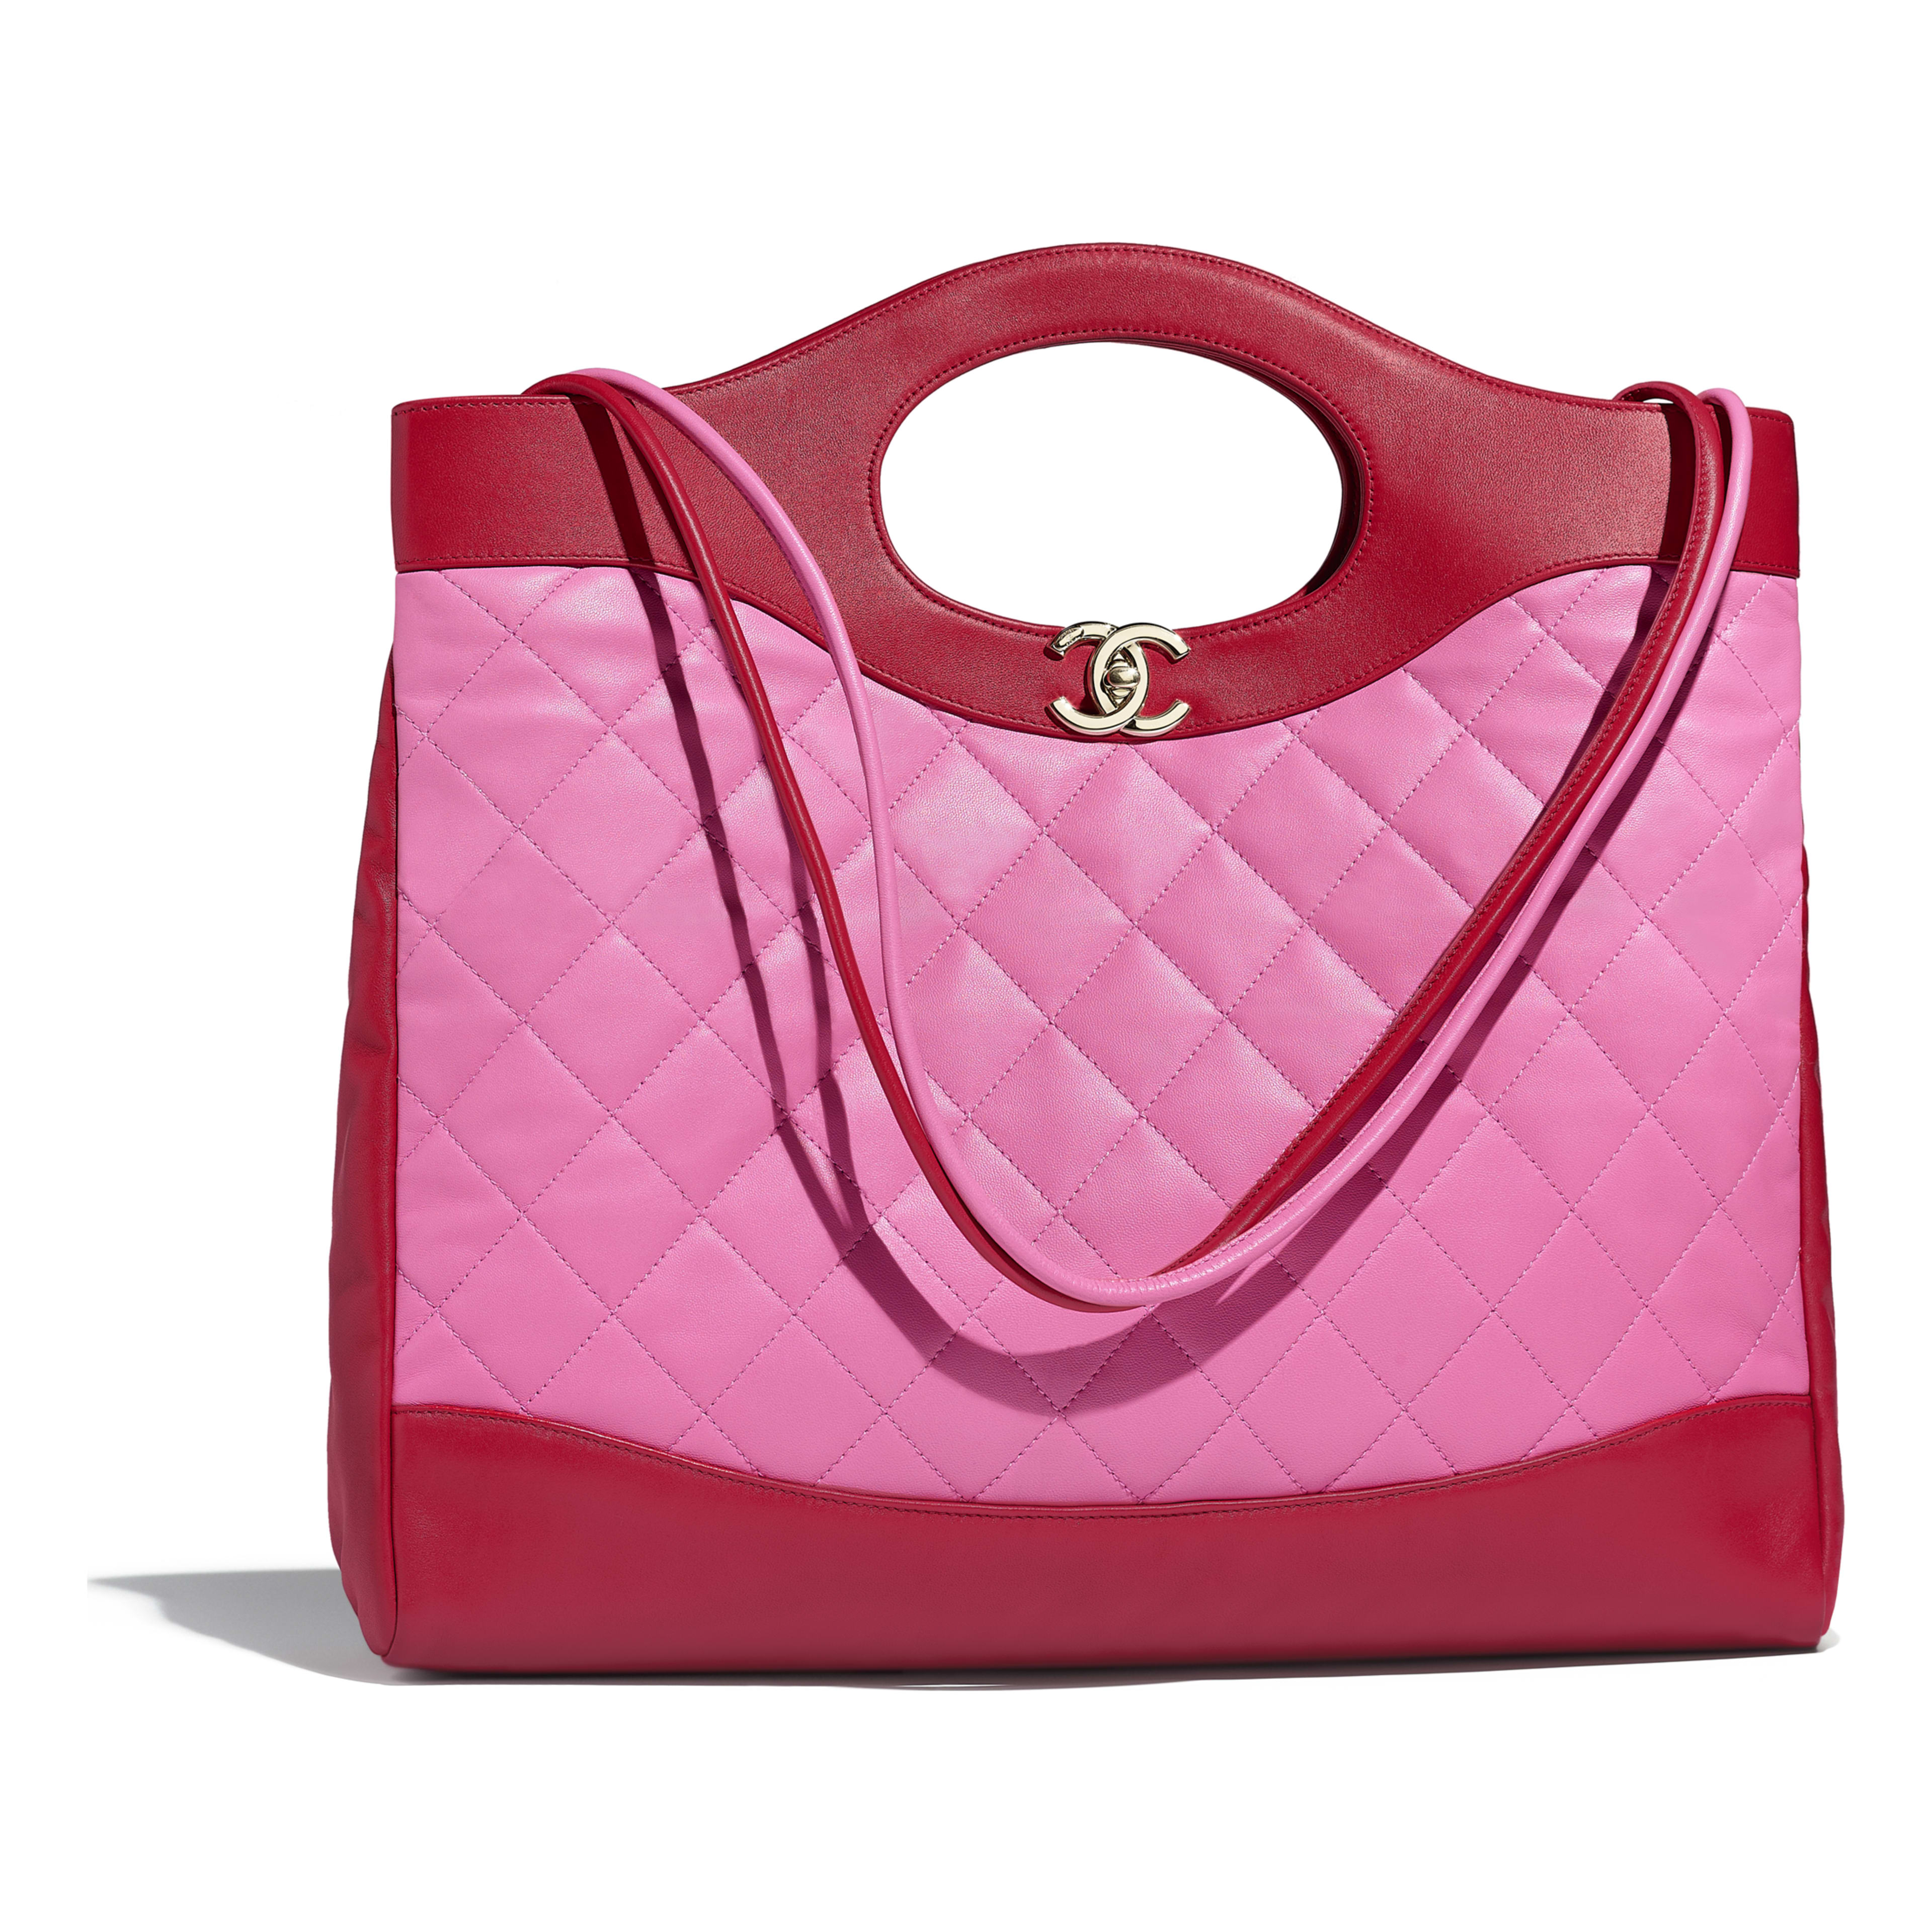 Chanel red bag foto